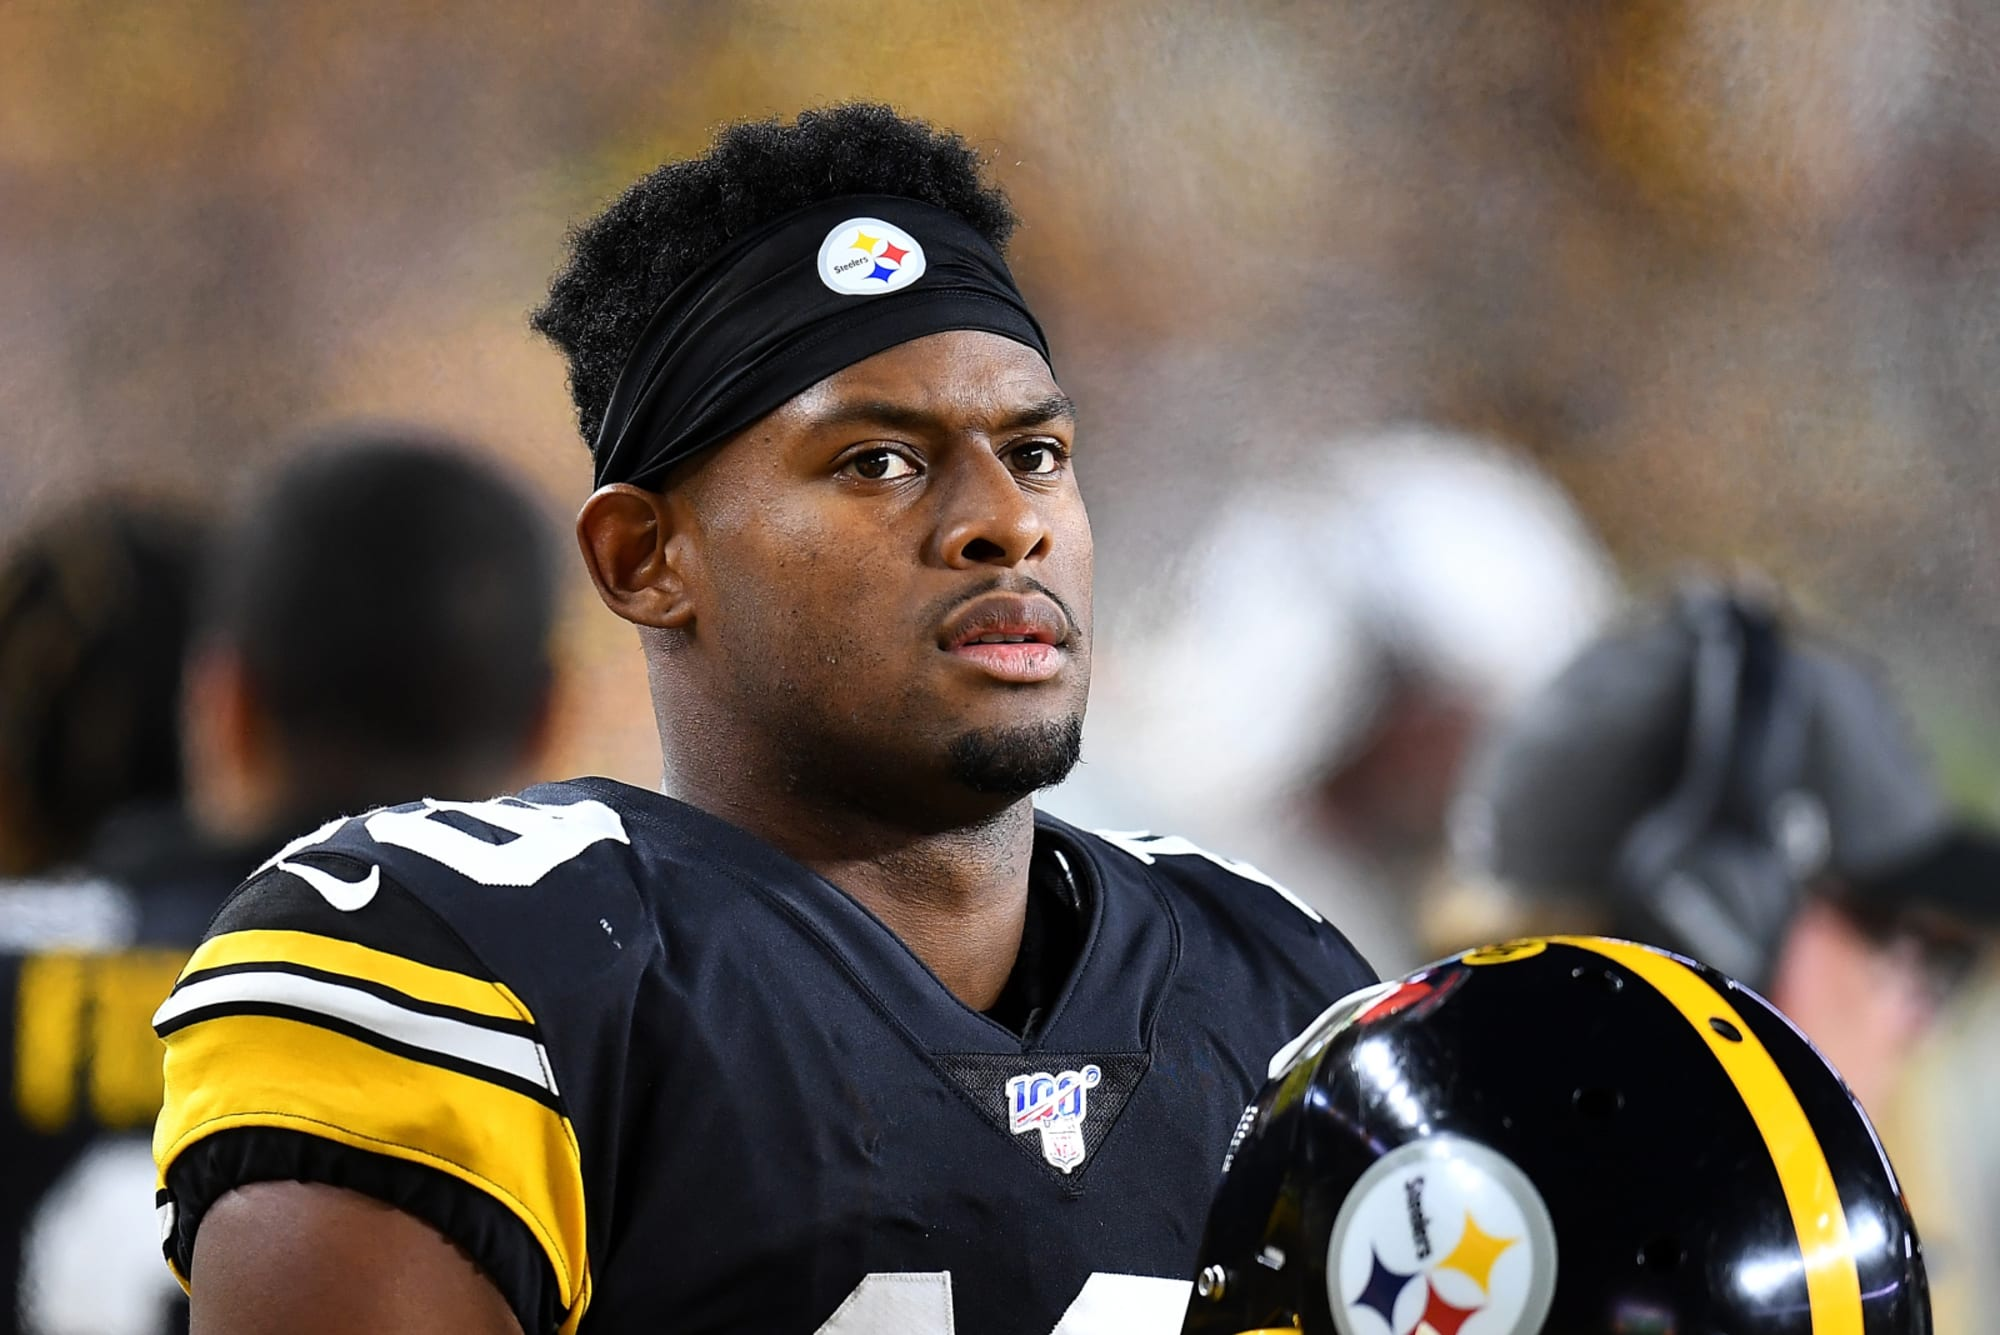 Steelers WR JuJu Smith-Schuster finds new agent before his next payday